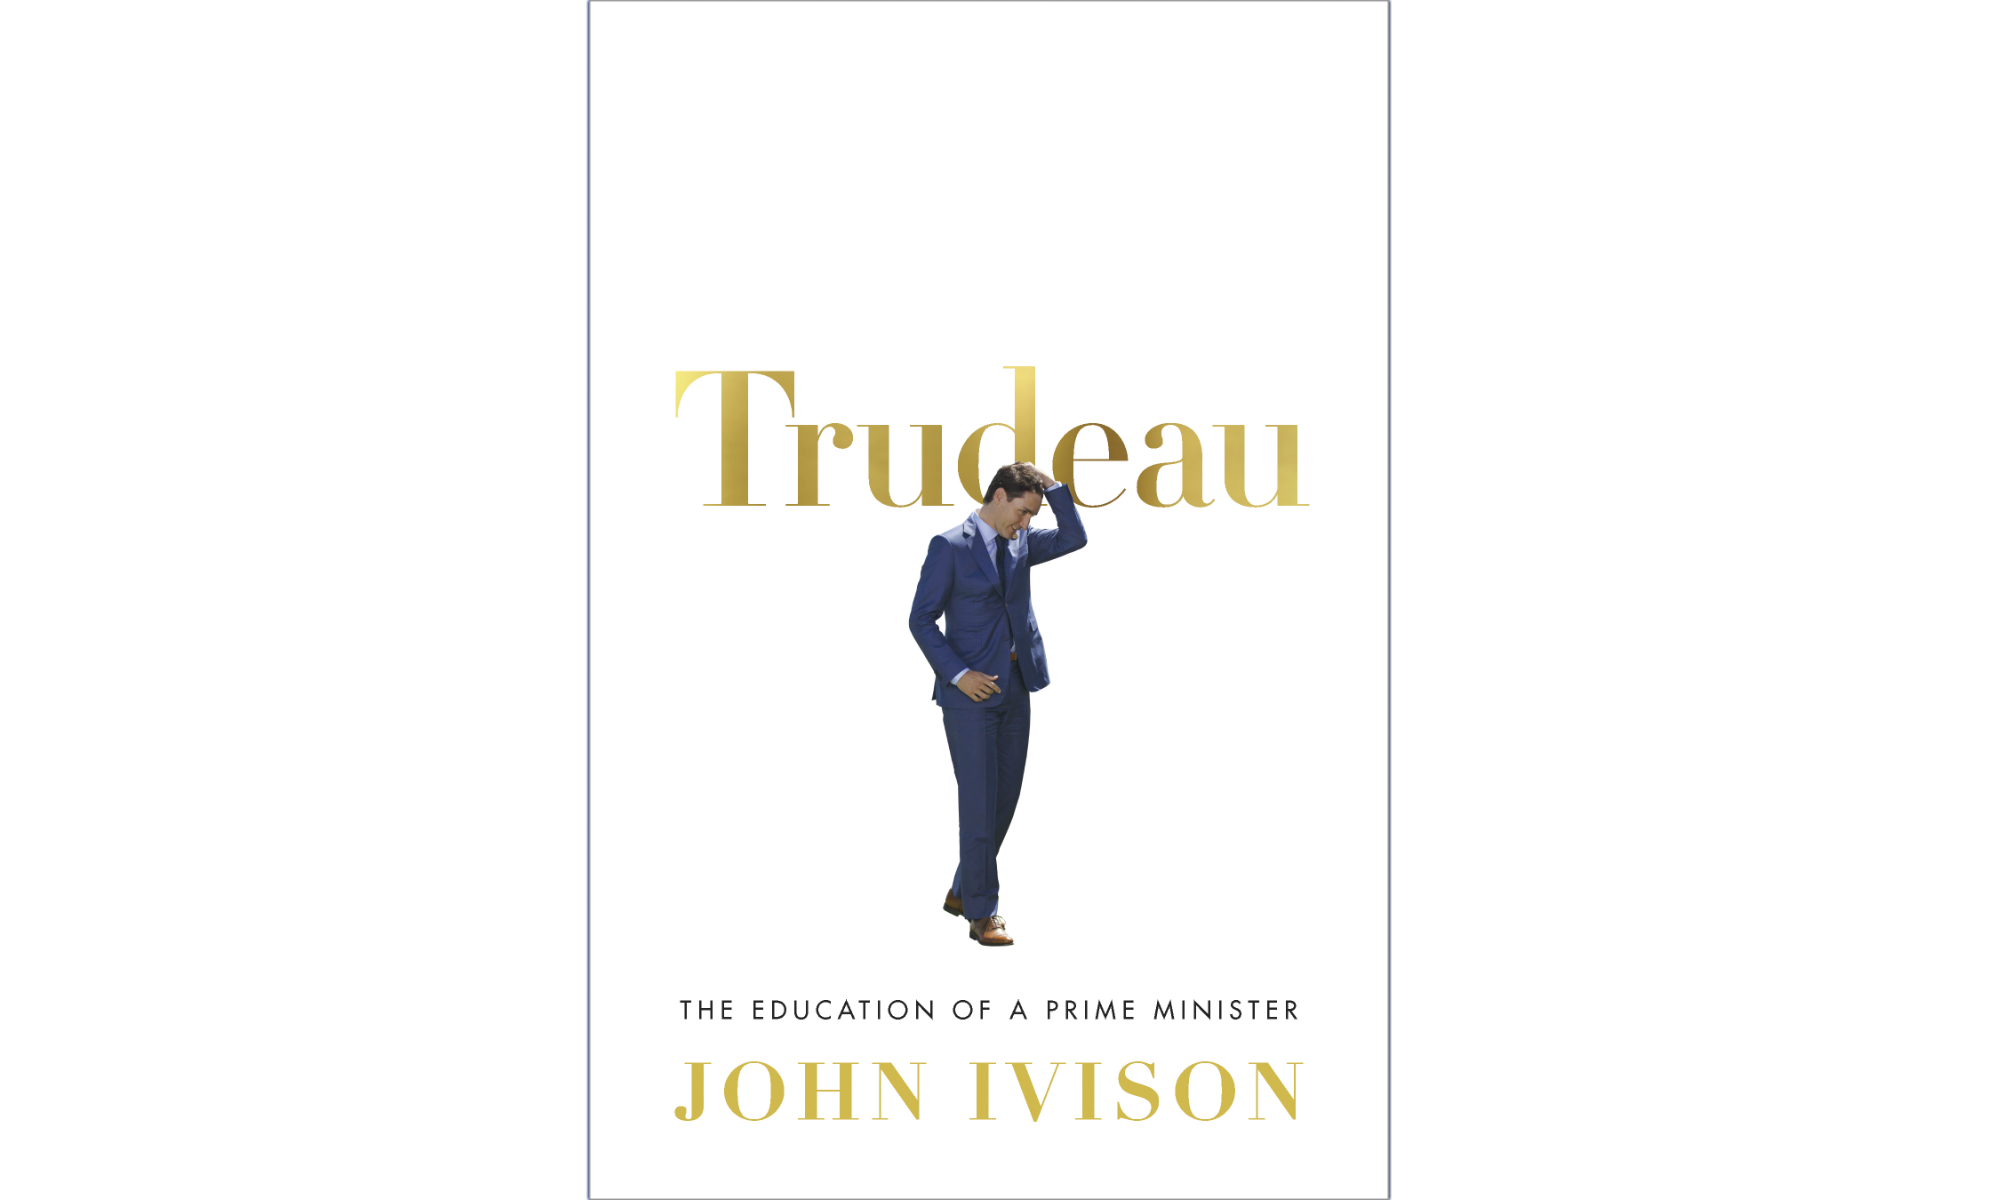 Trudeau: The Education of a Prime Minister cover